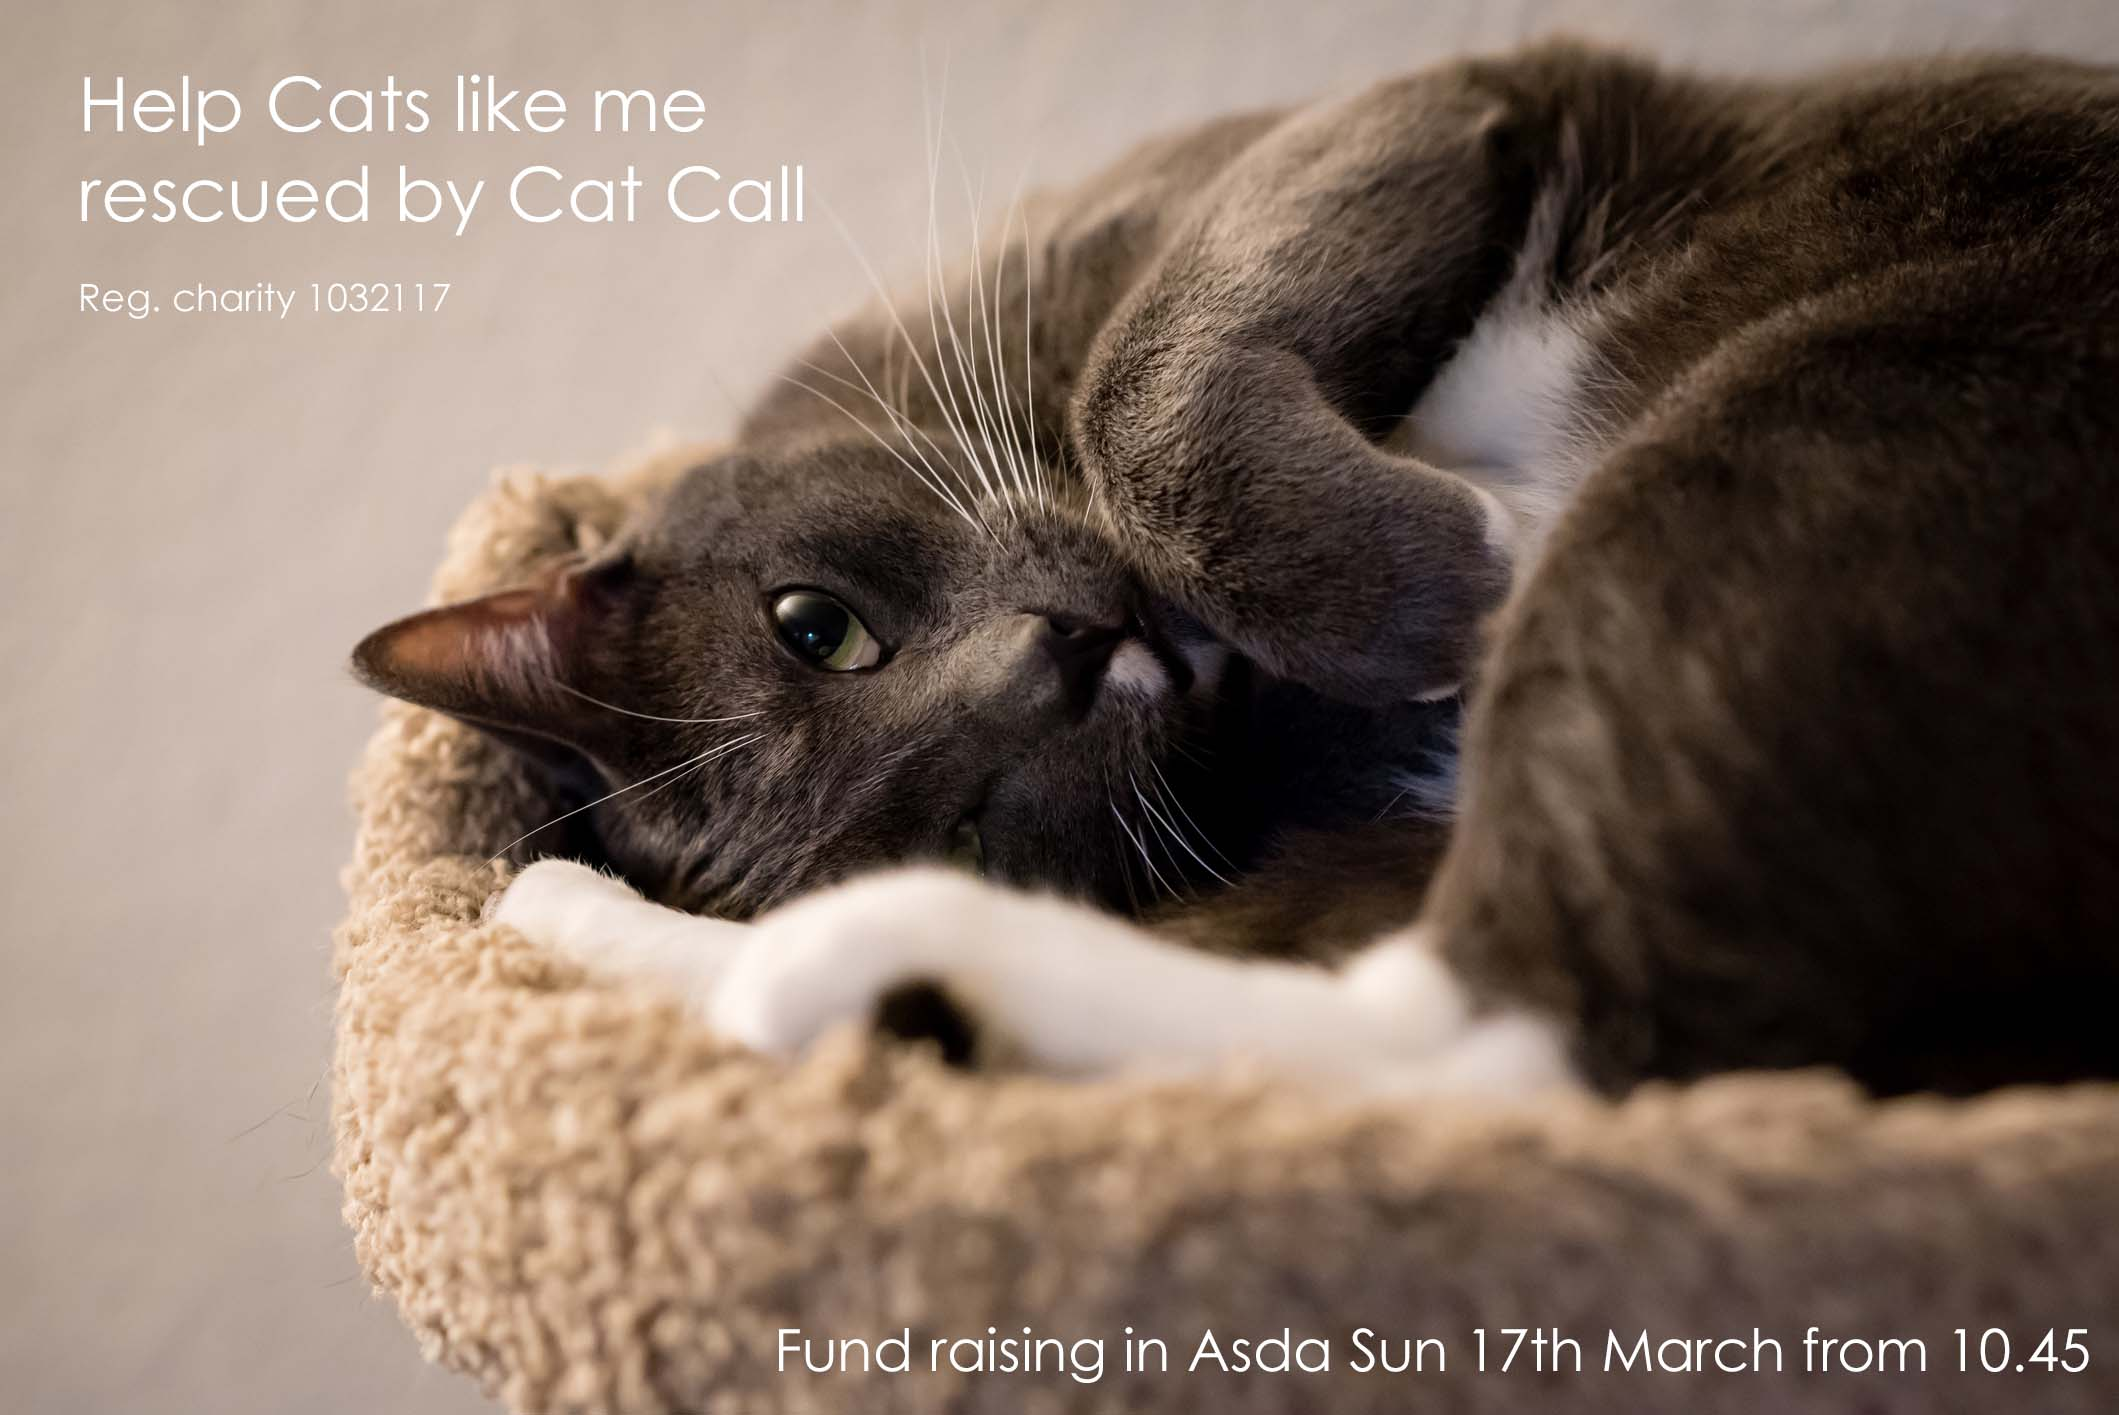 Cat Call in Asda Sunday 17th March